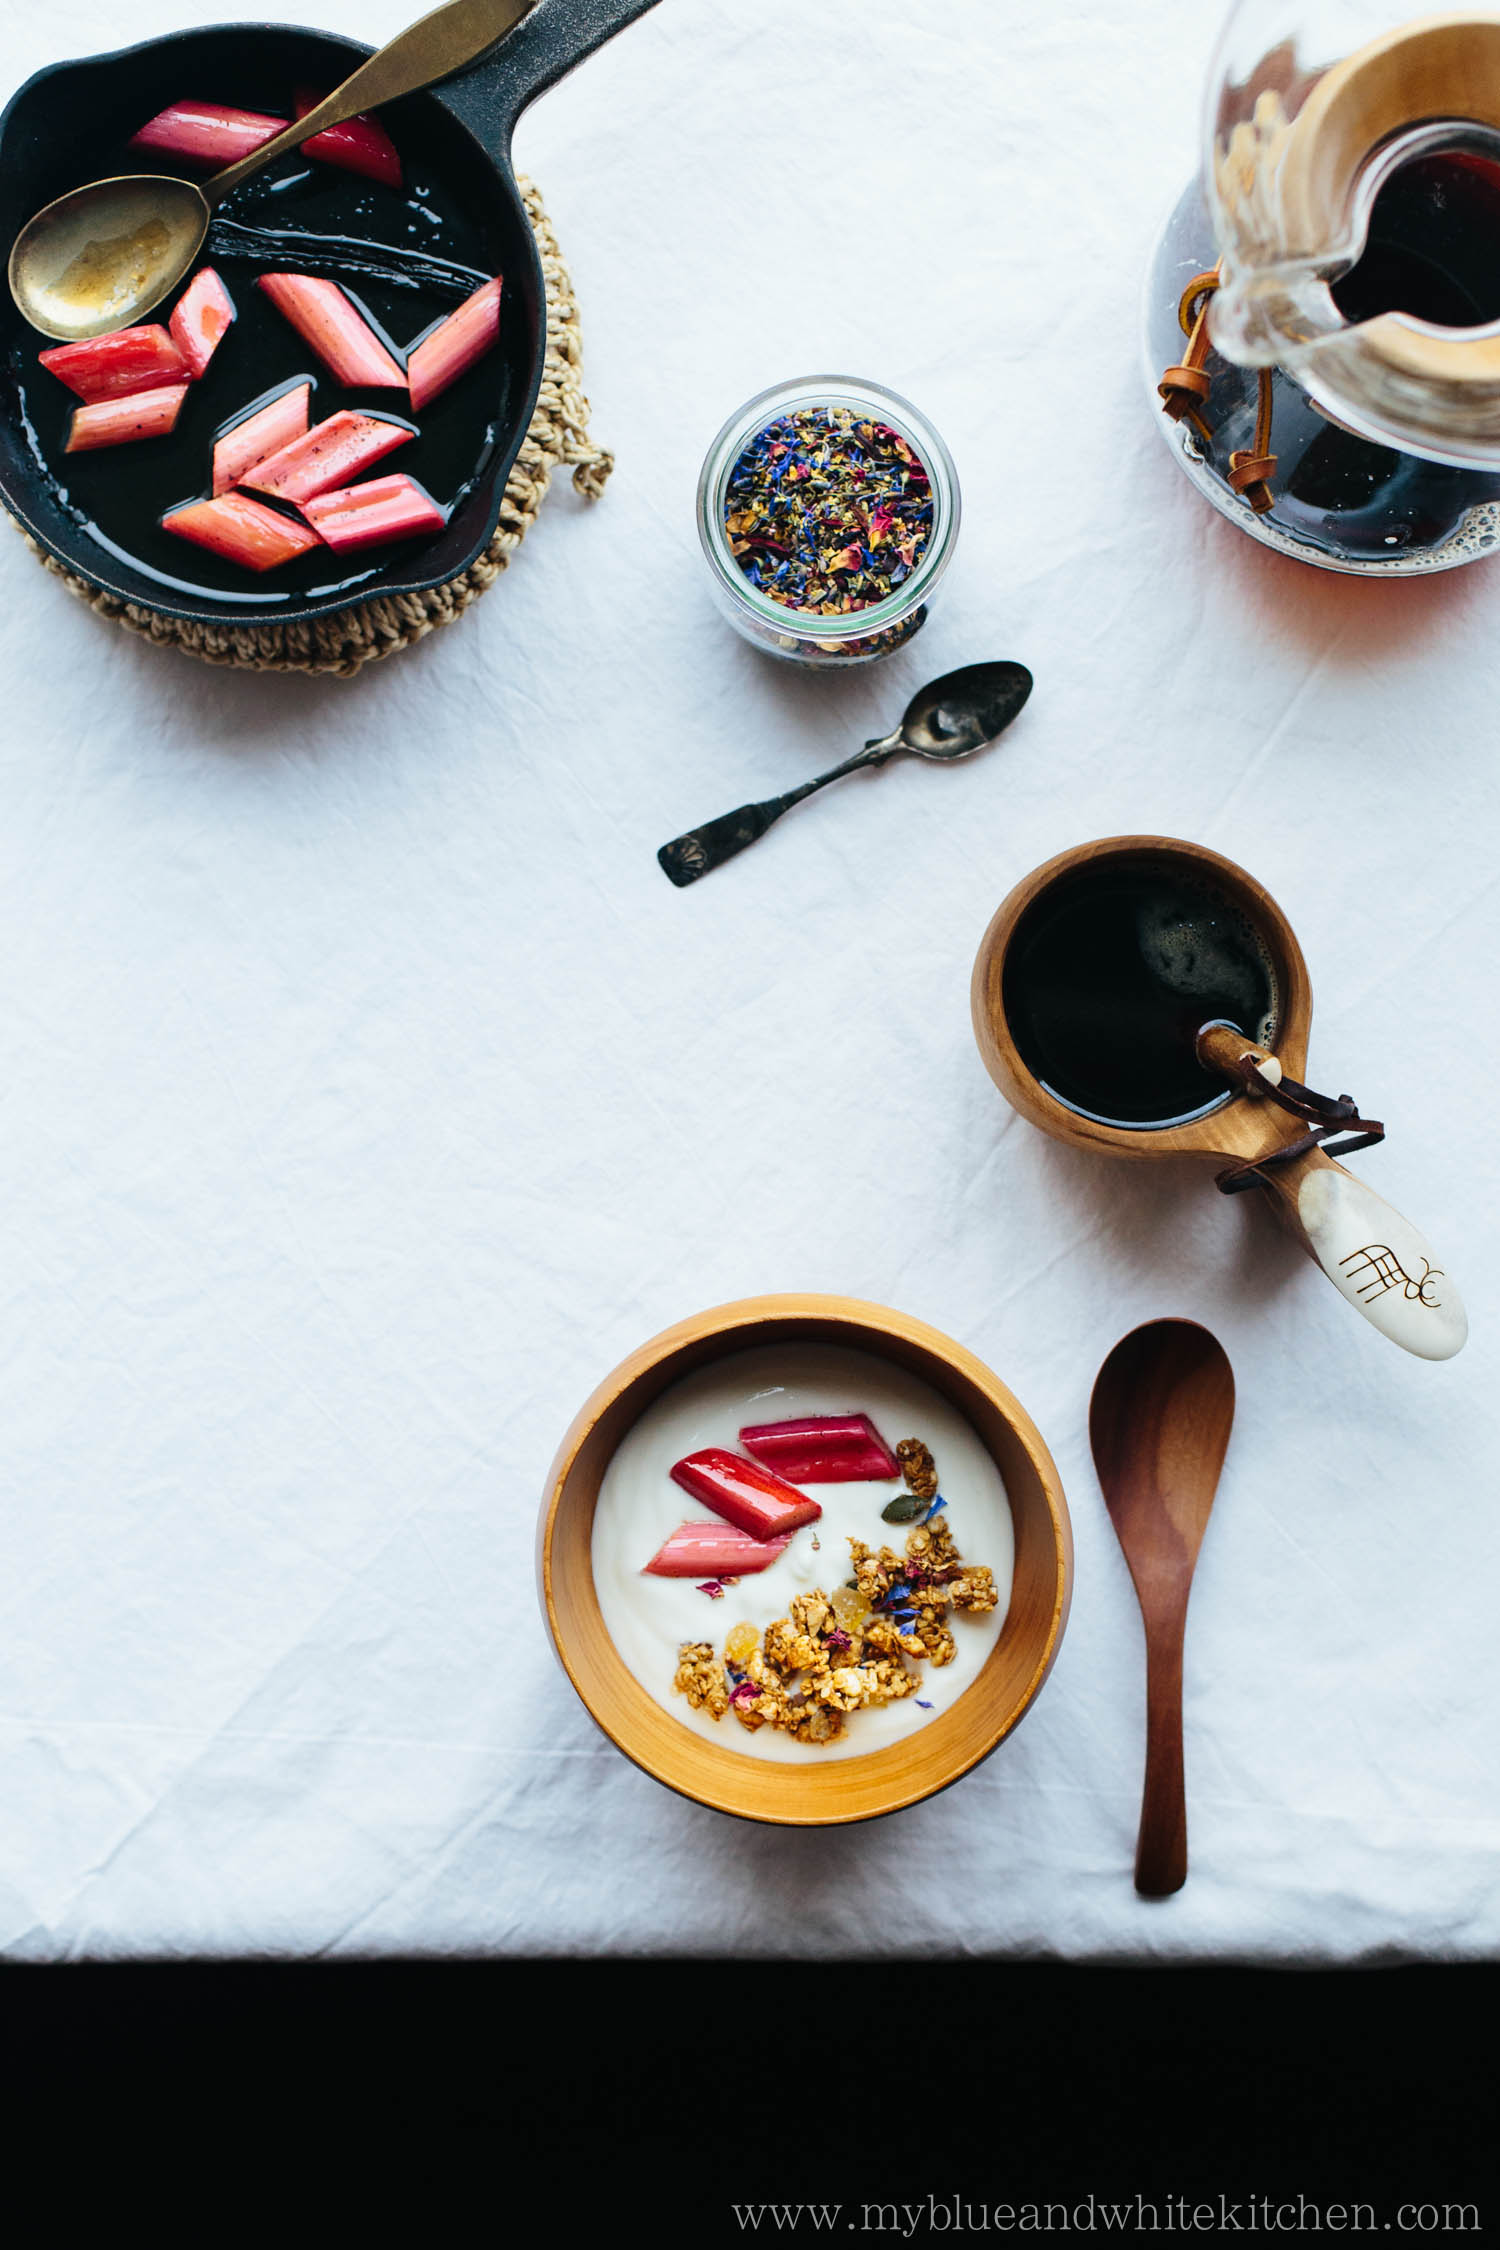 Clumpy Granola with Stewed Rhubarb | My Blue&White Kitchen